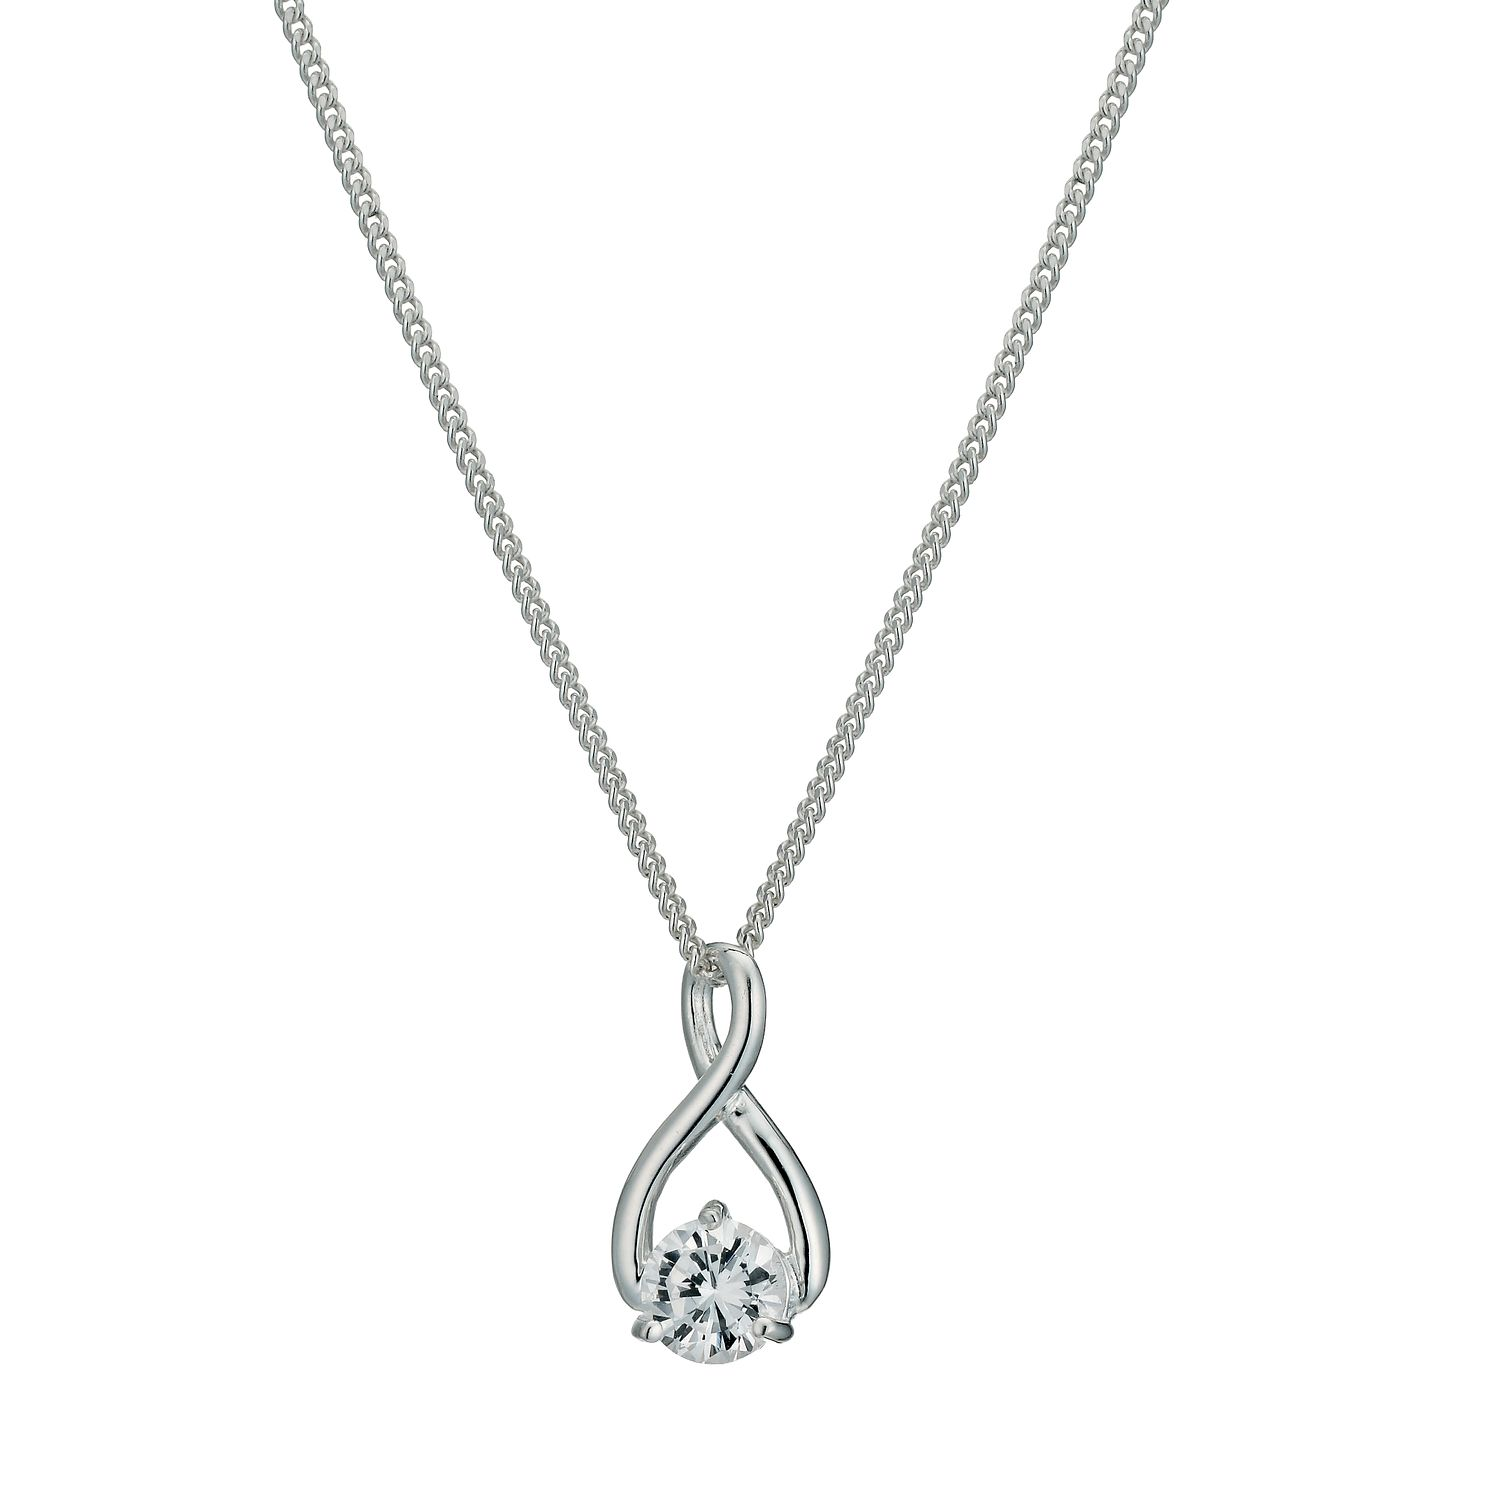 Silver Figure of 8 Cubic Zirconia Pendant - Product number 9592466